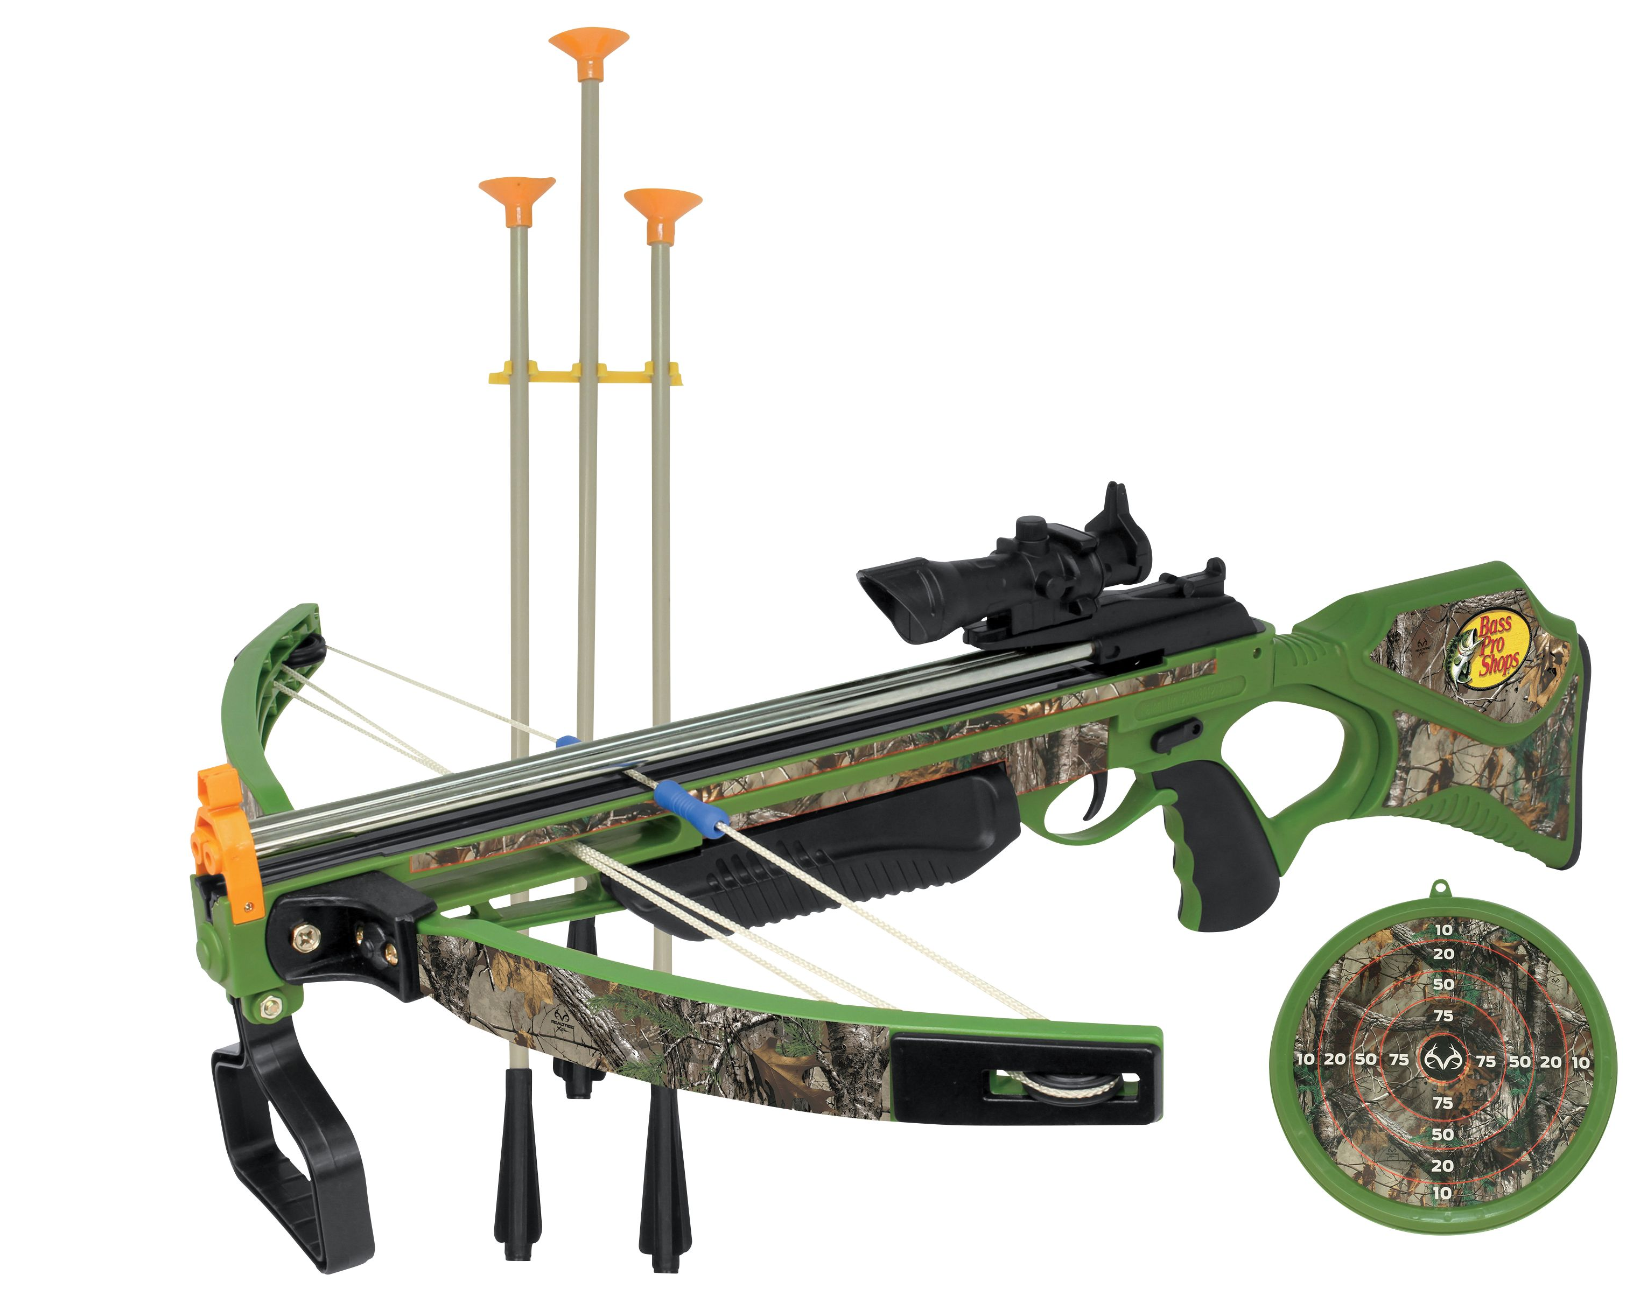 Realtree Camo Crossbow Toy for Boys Realtreecamo